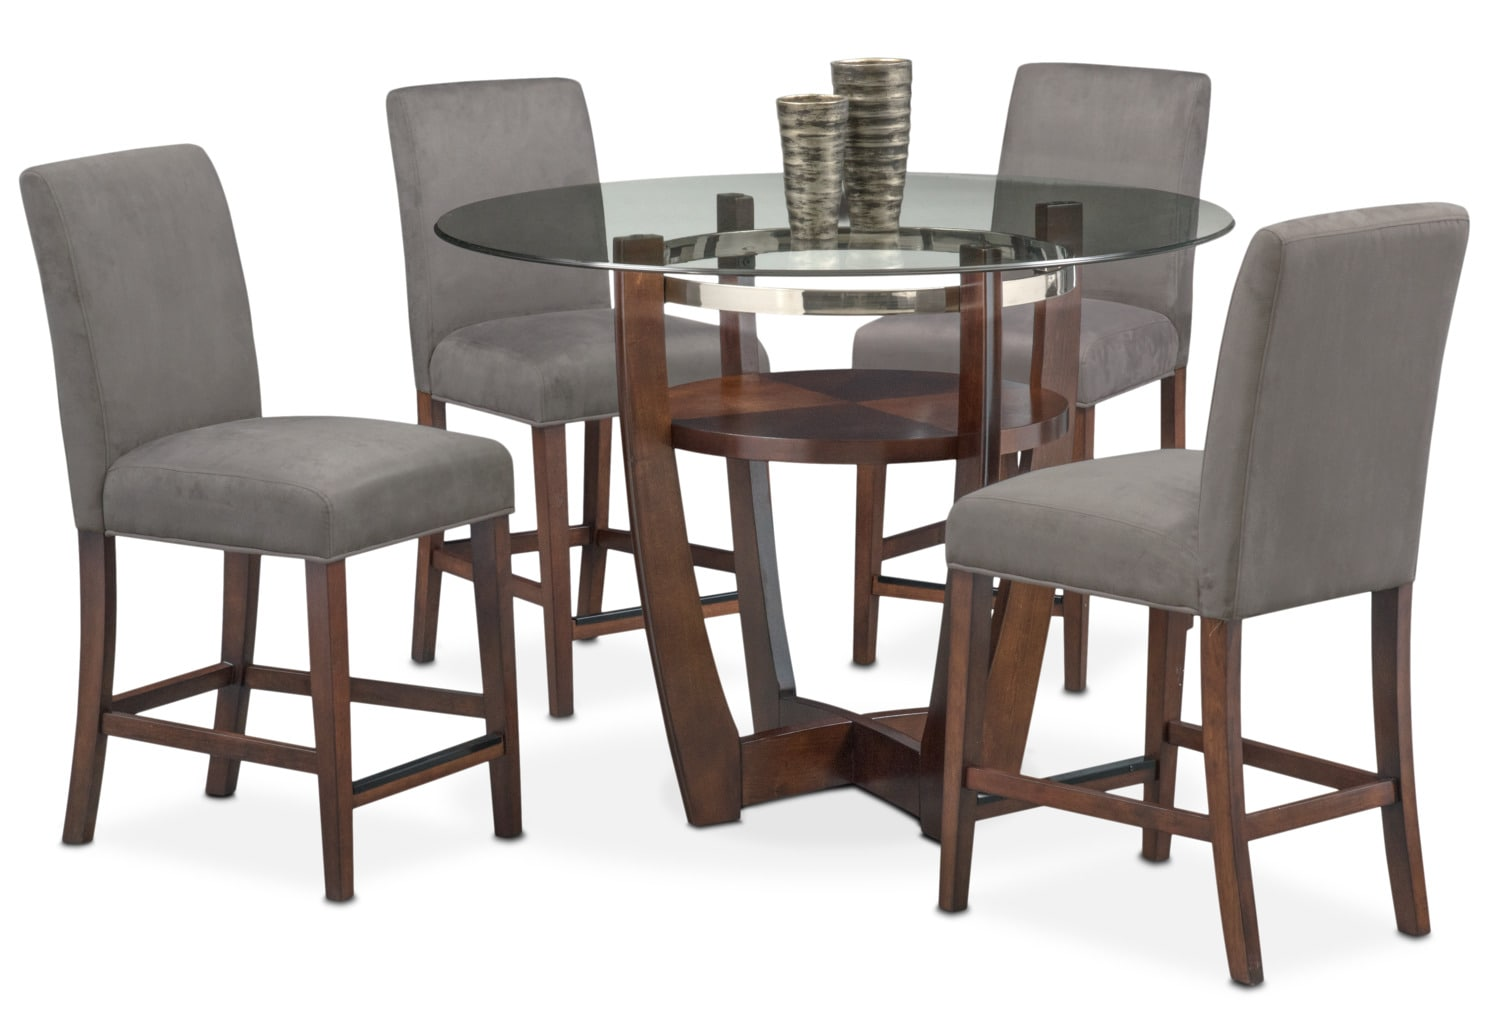 Dining room sets on sale cheap dining room table and for Kitchen dining sets on sale